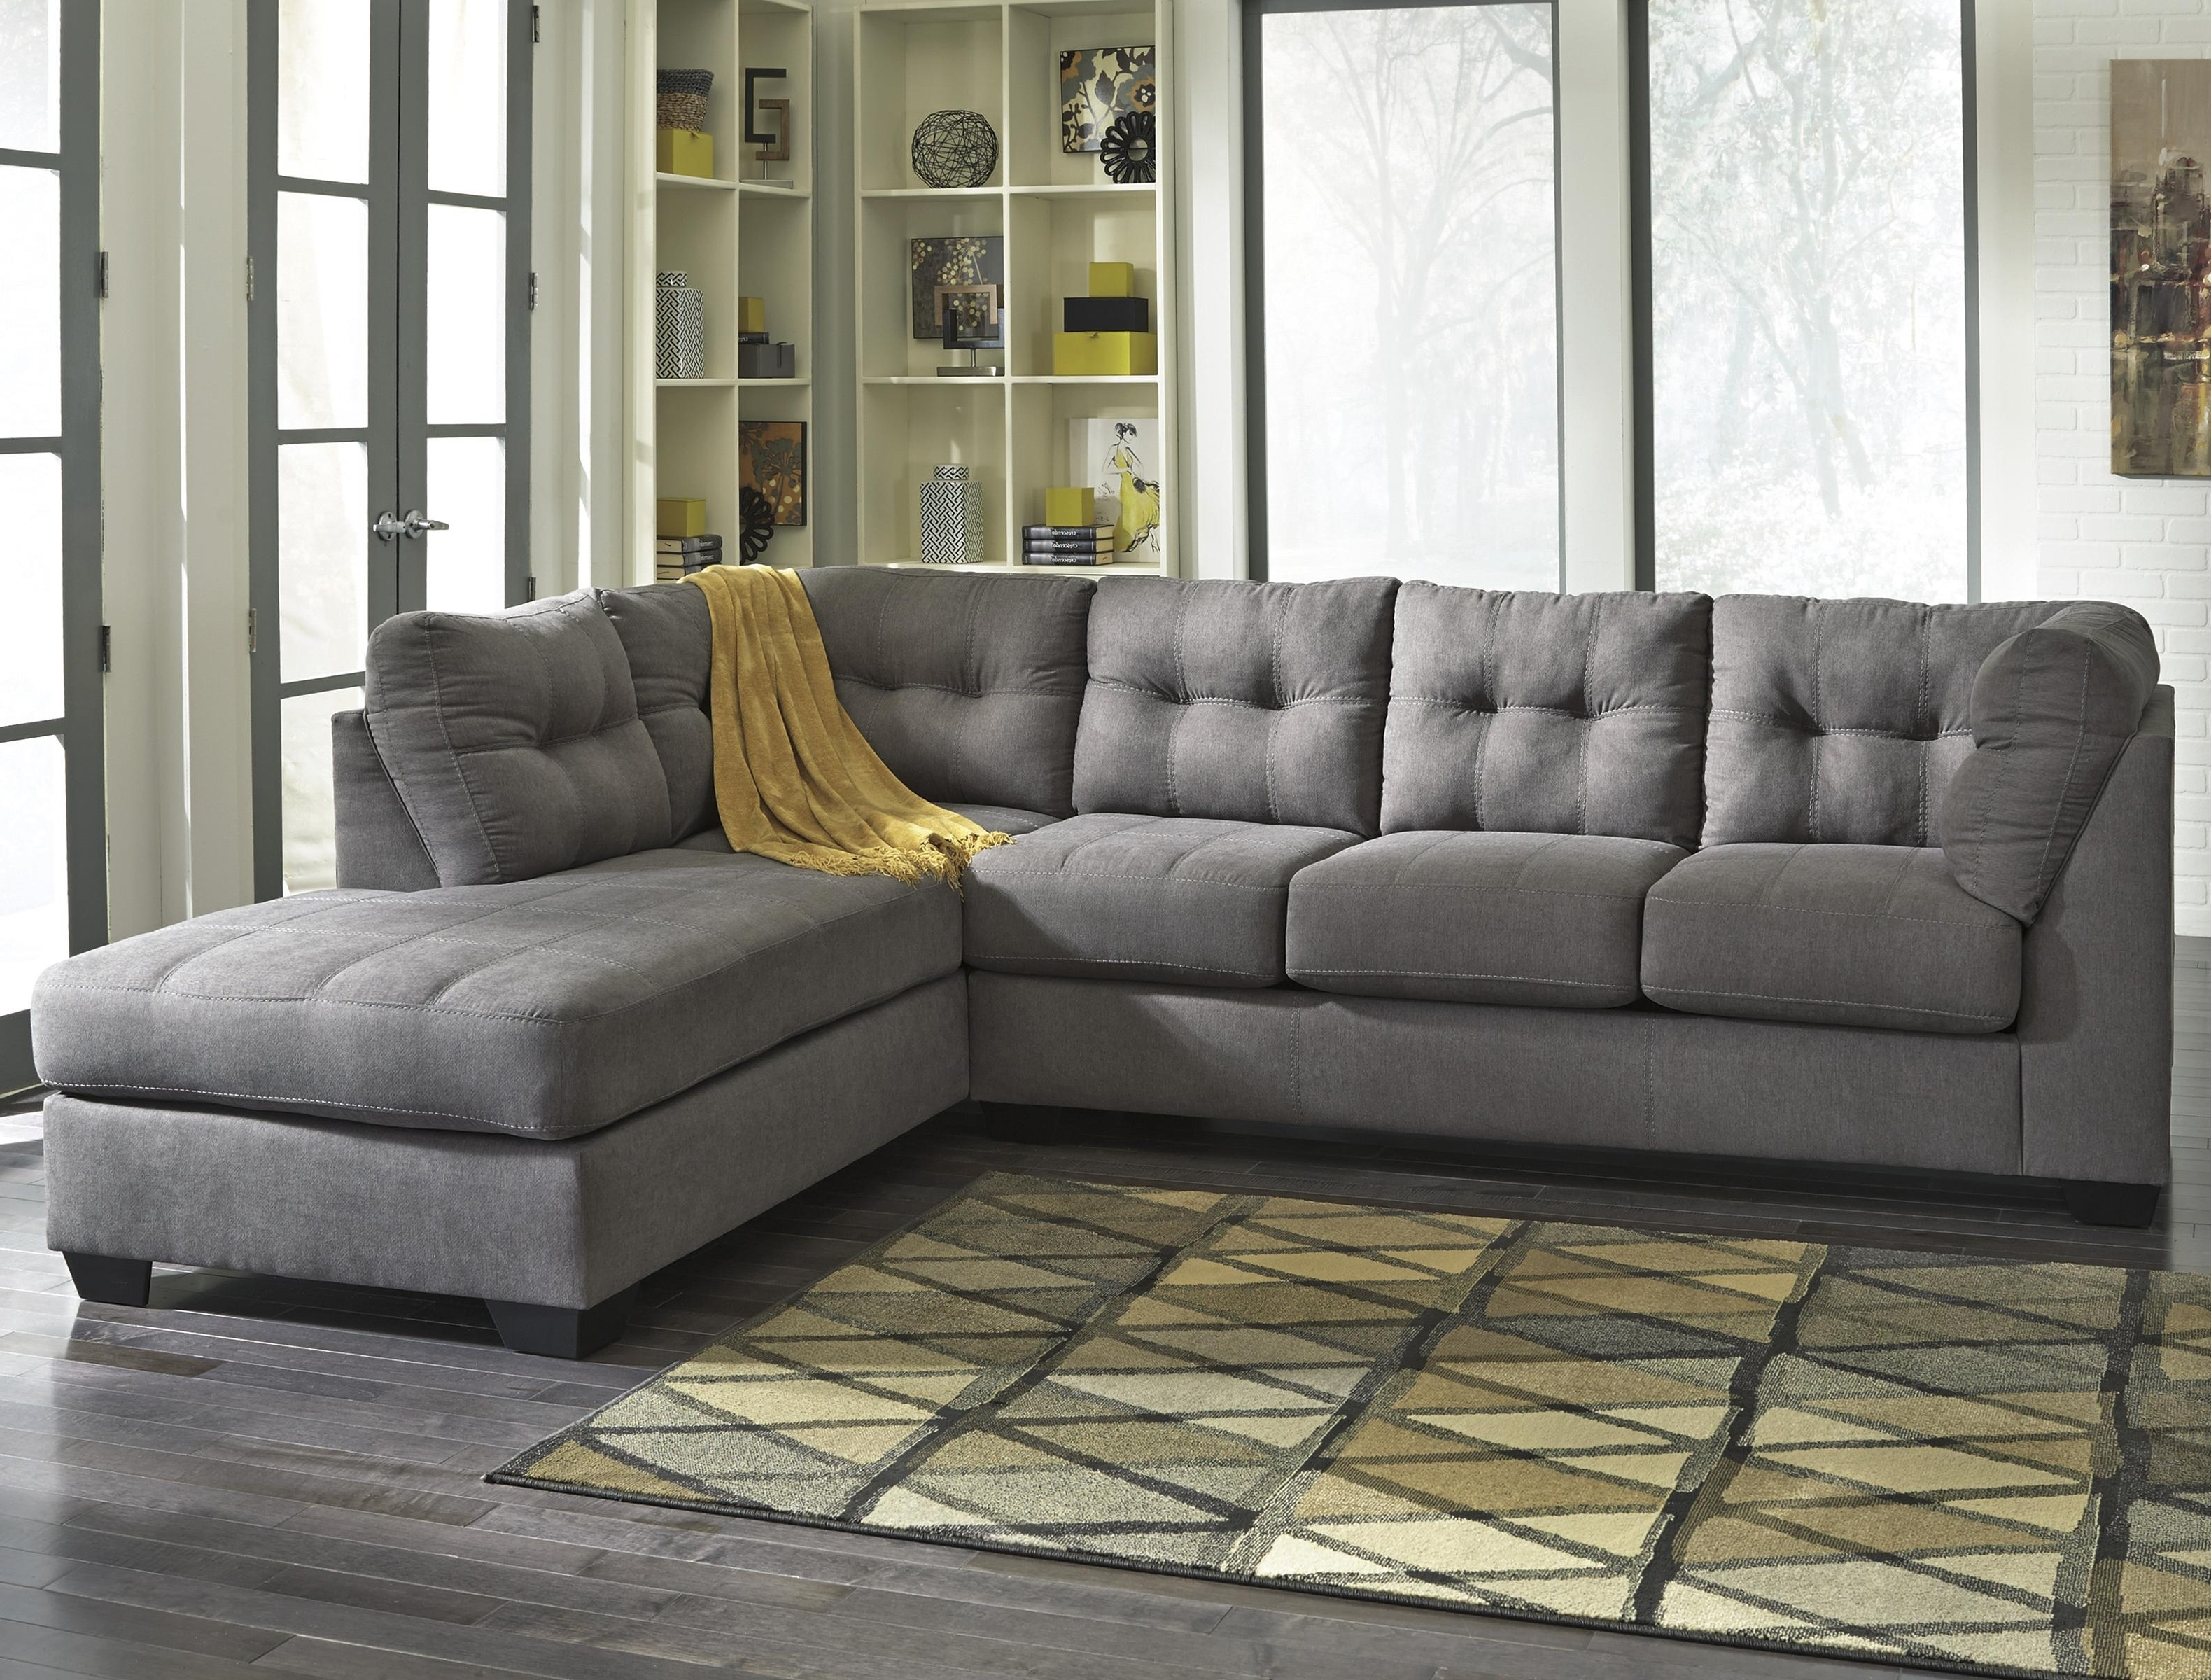 Maryland Sofas With Regard To Preferred Incredible Sectional Sofas Maryland – Mediasupload (View 5 of 20)